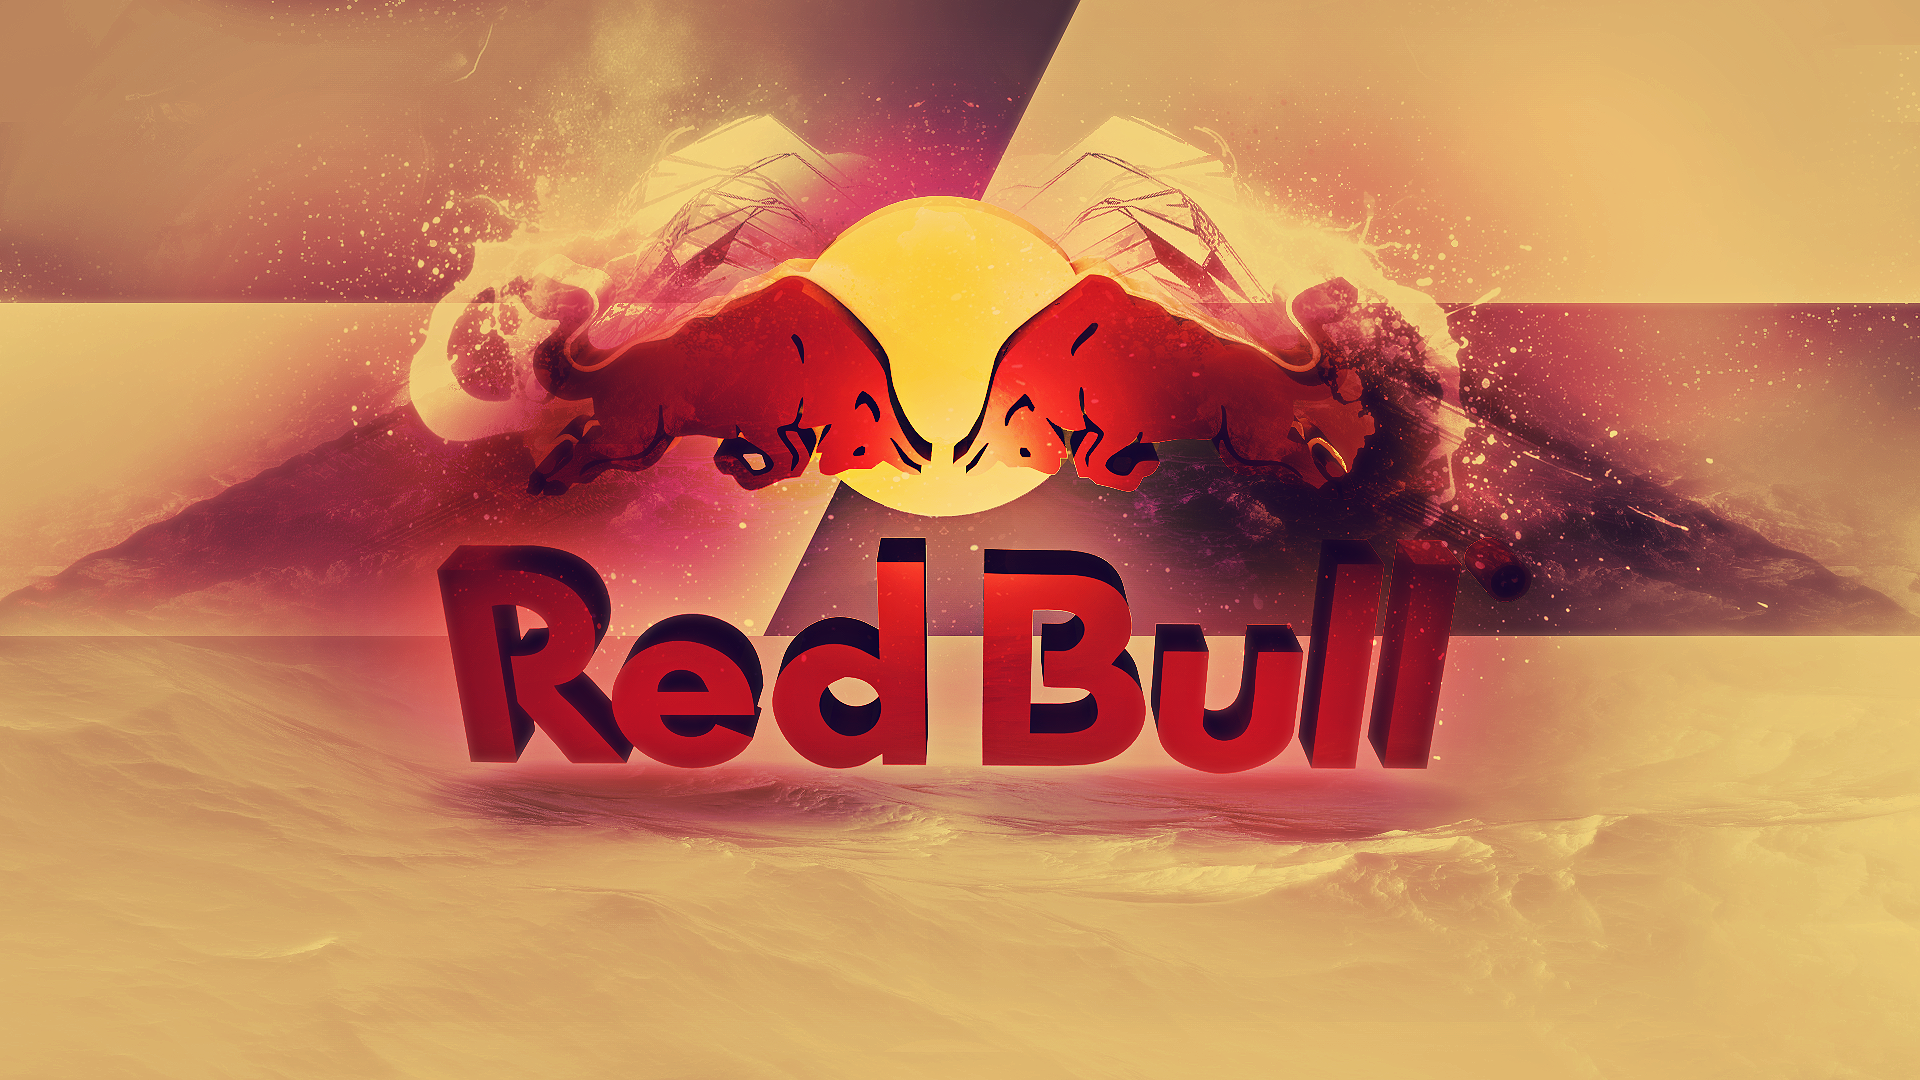 Pin By Alec Mannigel On Red I M Seeing It Bulls Wallpaper Red Bull Red Bull Design